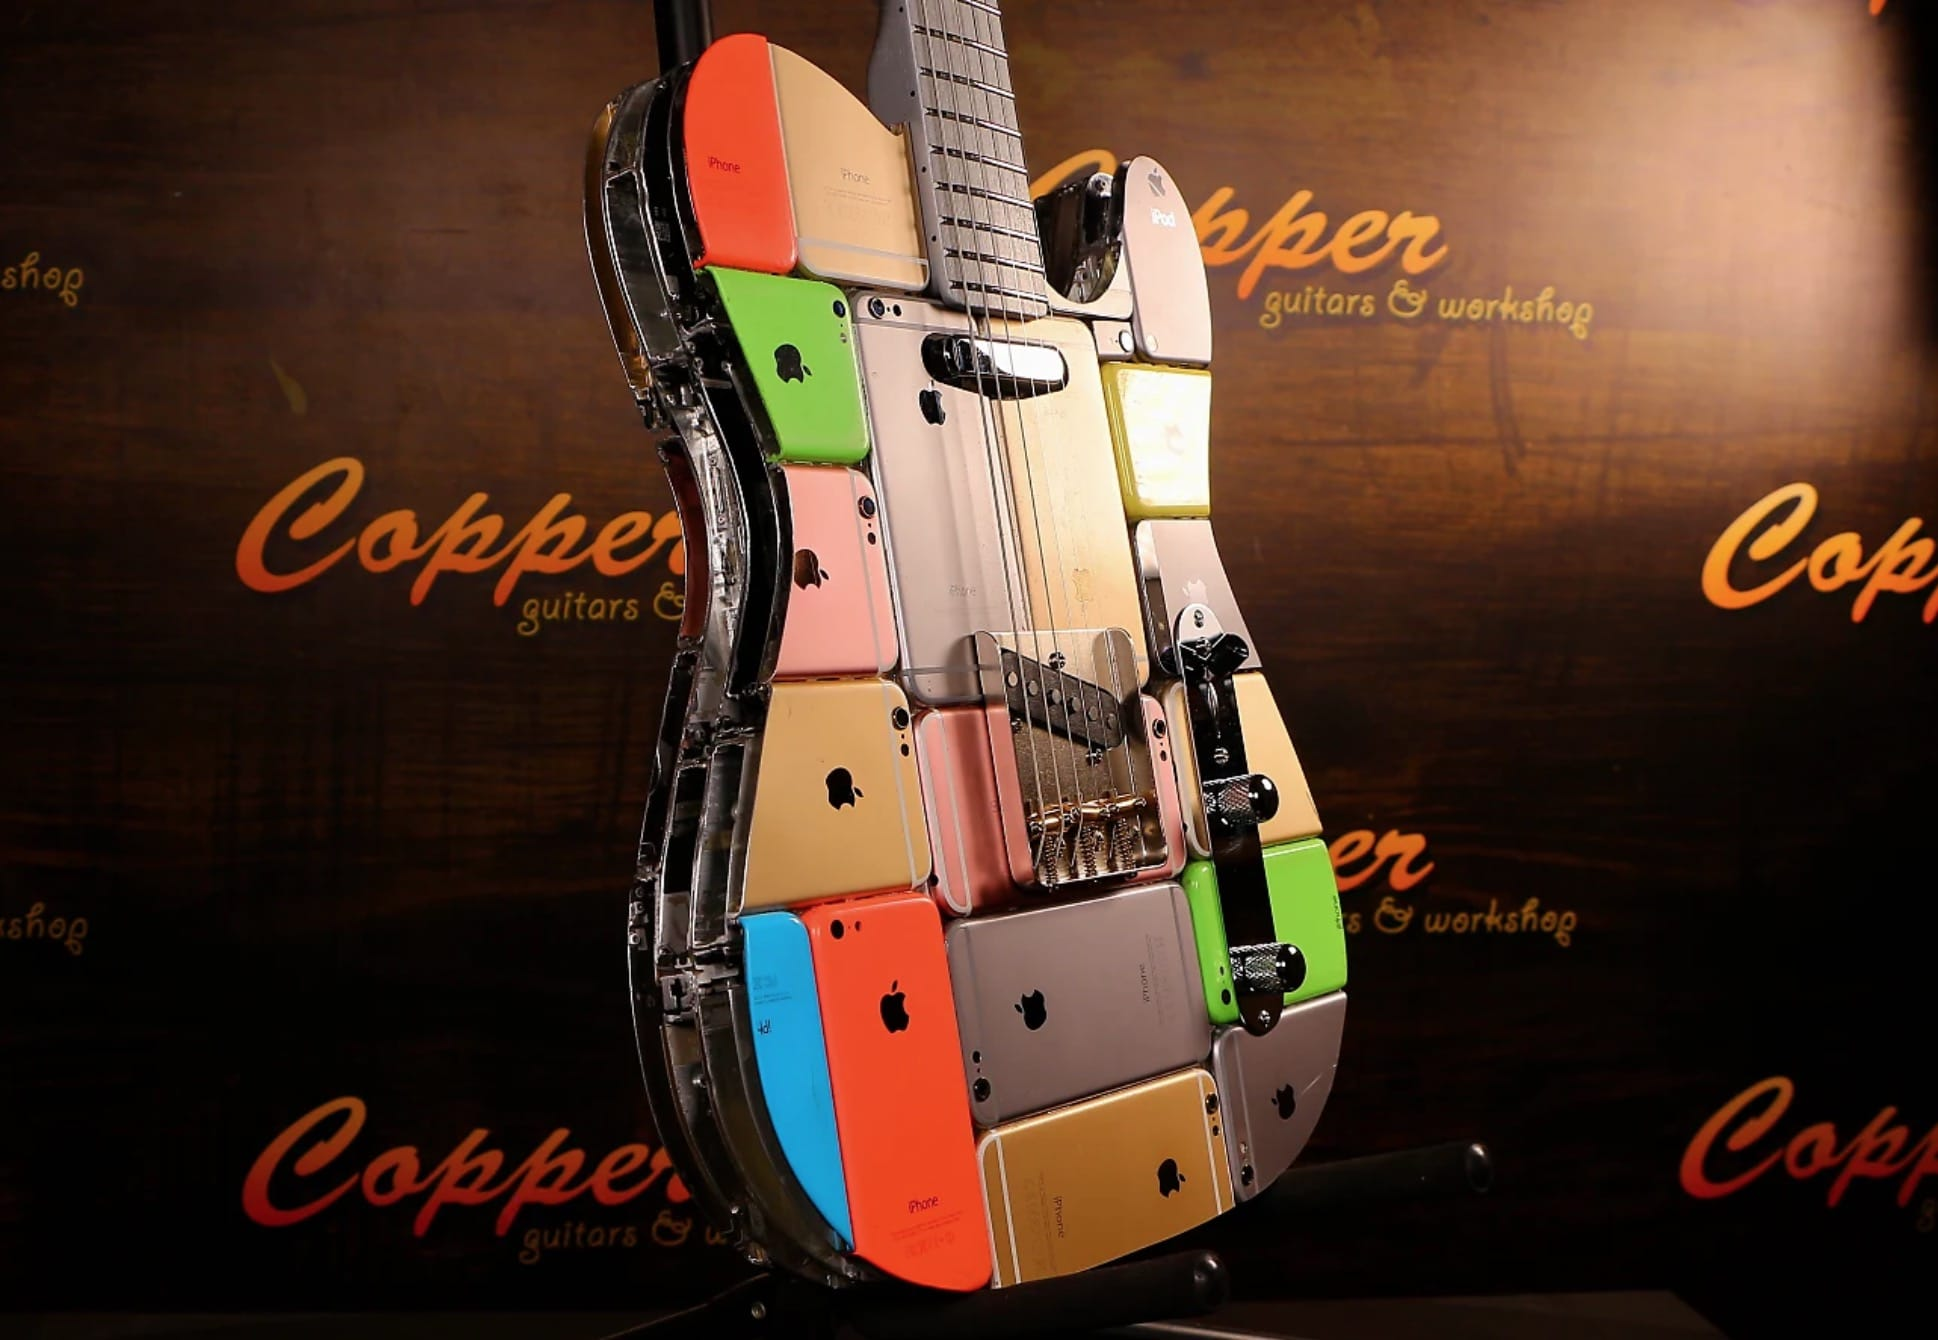 This custom iPhone guitar from Copper Guitars is the most rockin' iPhone mod ever.